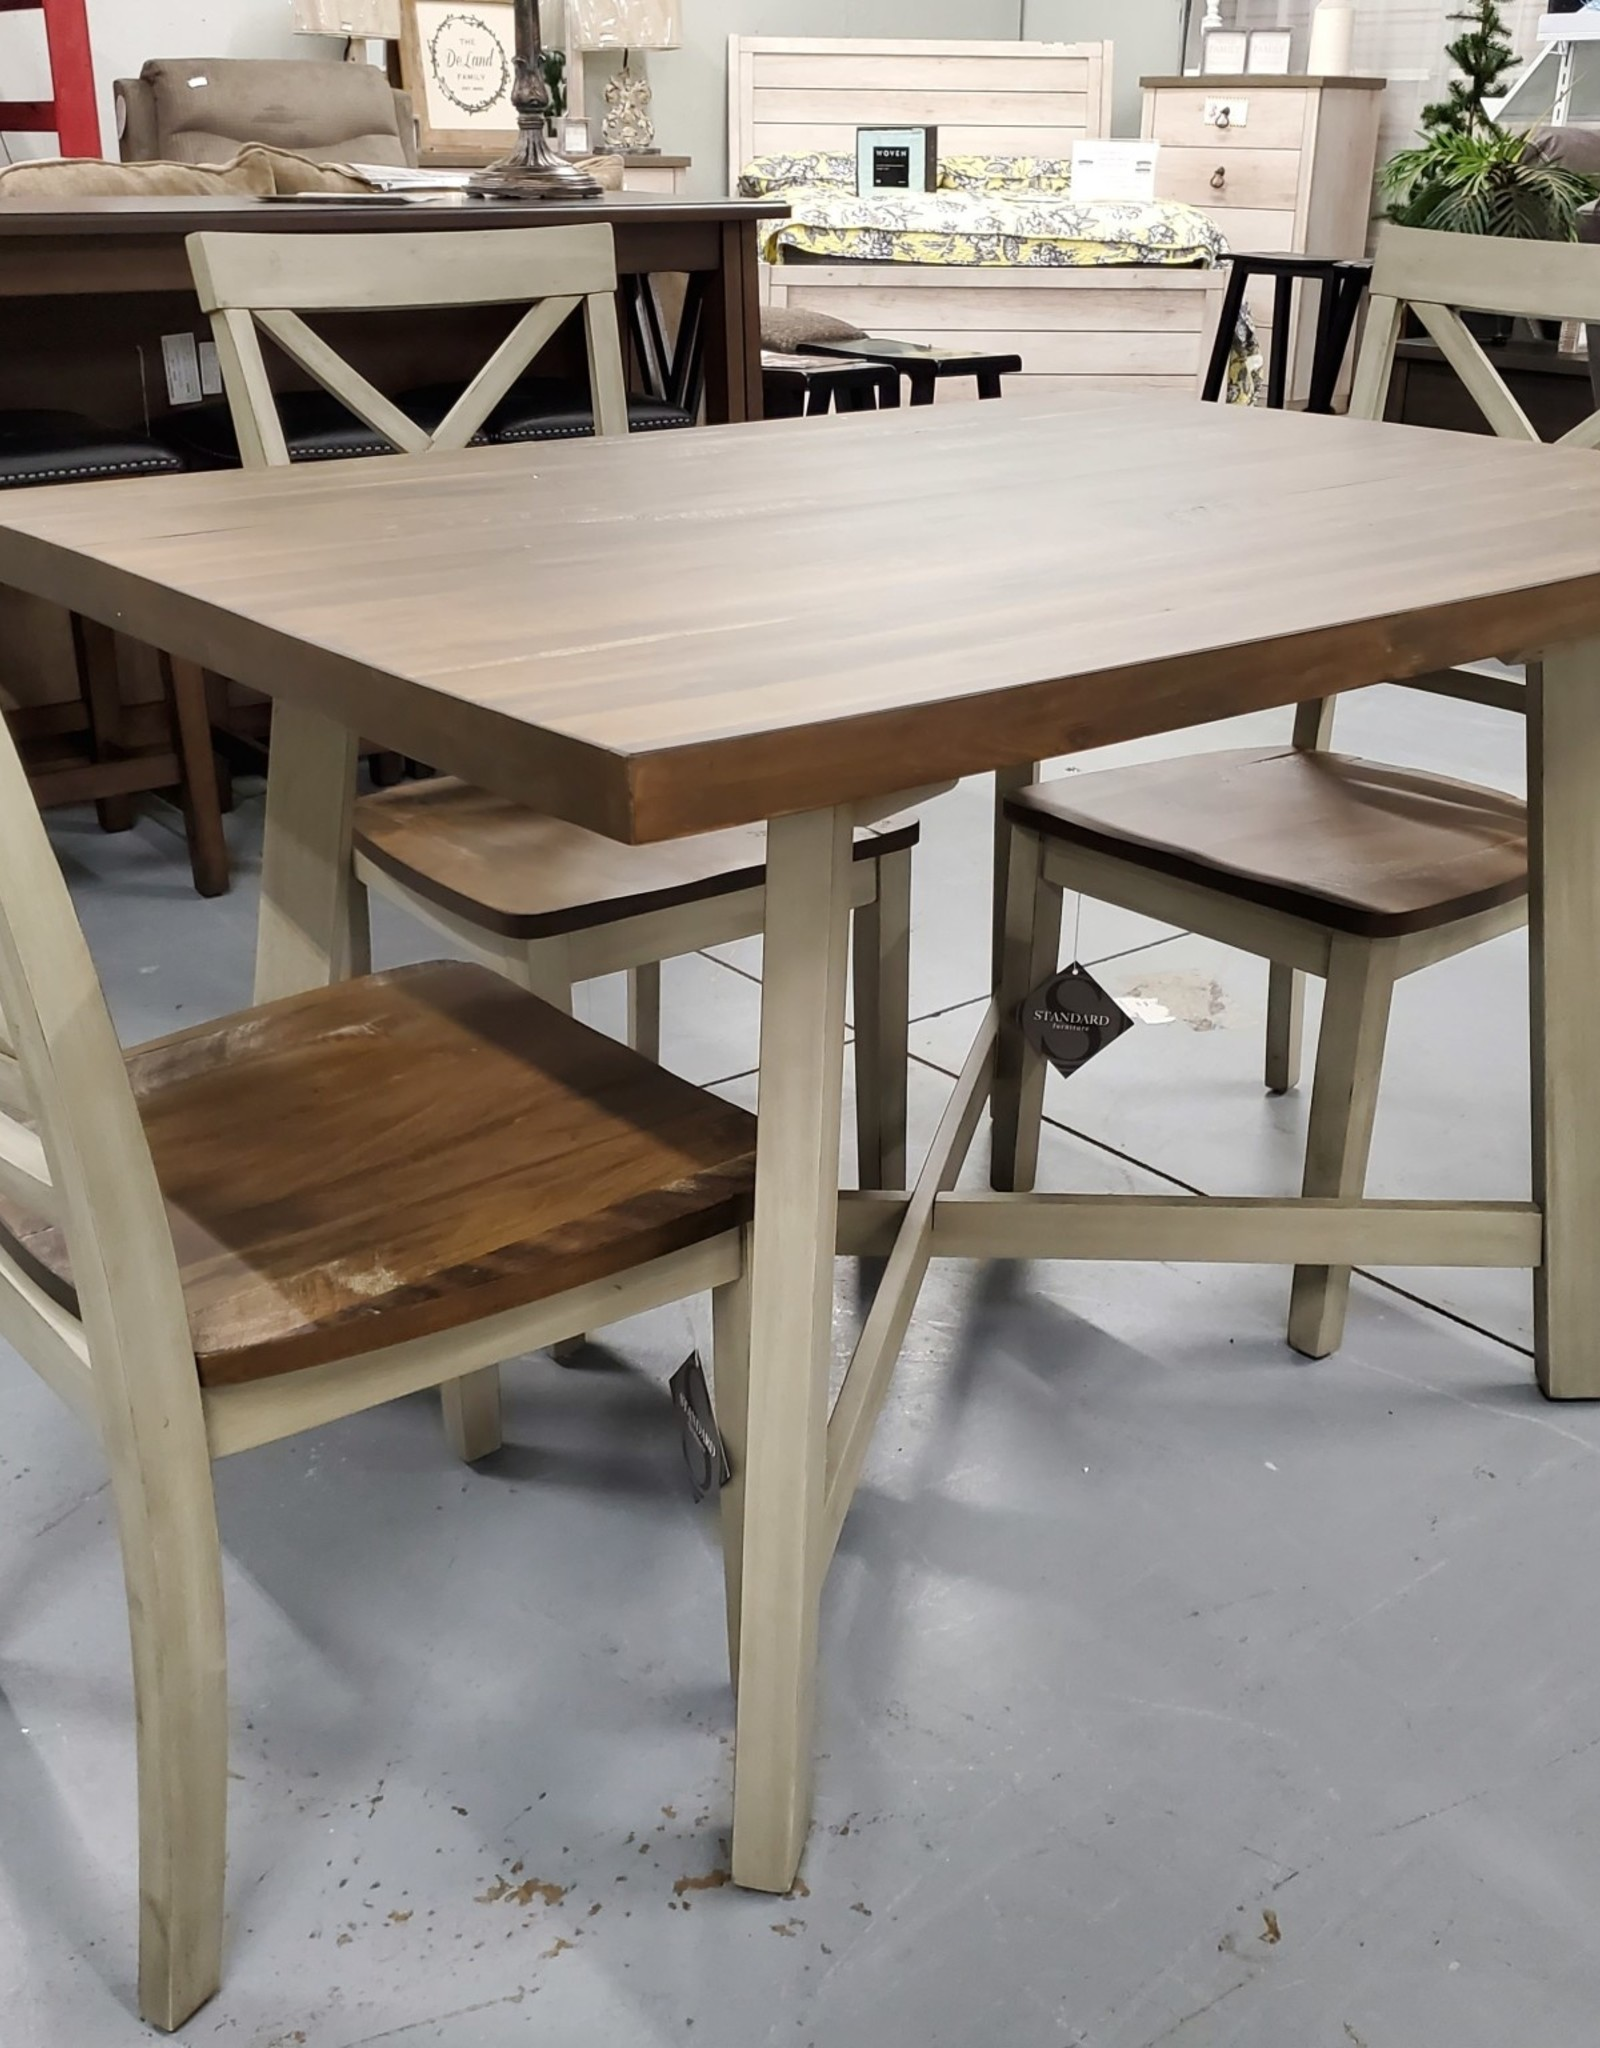 Standard Furniture Fairhaven Gray and Weatherwood Dining Table w/ 4 chairs